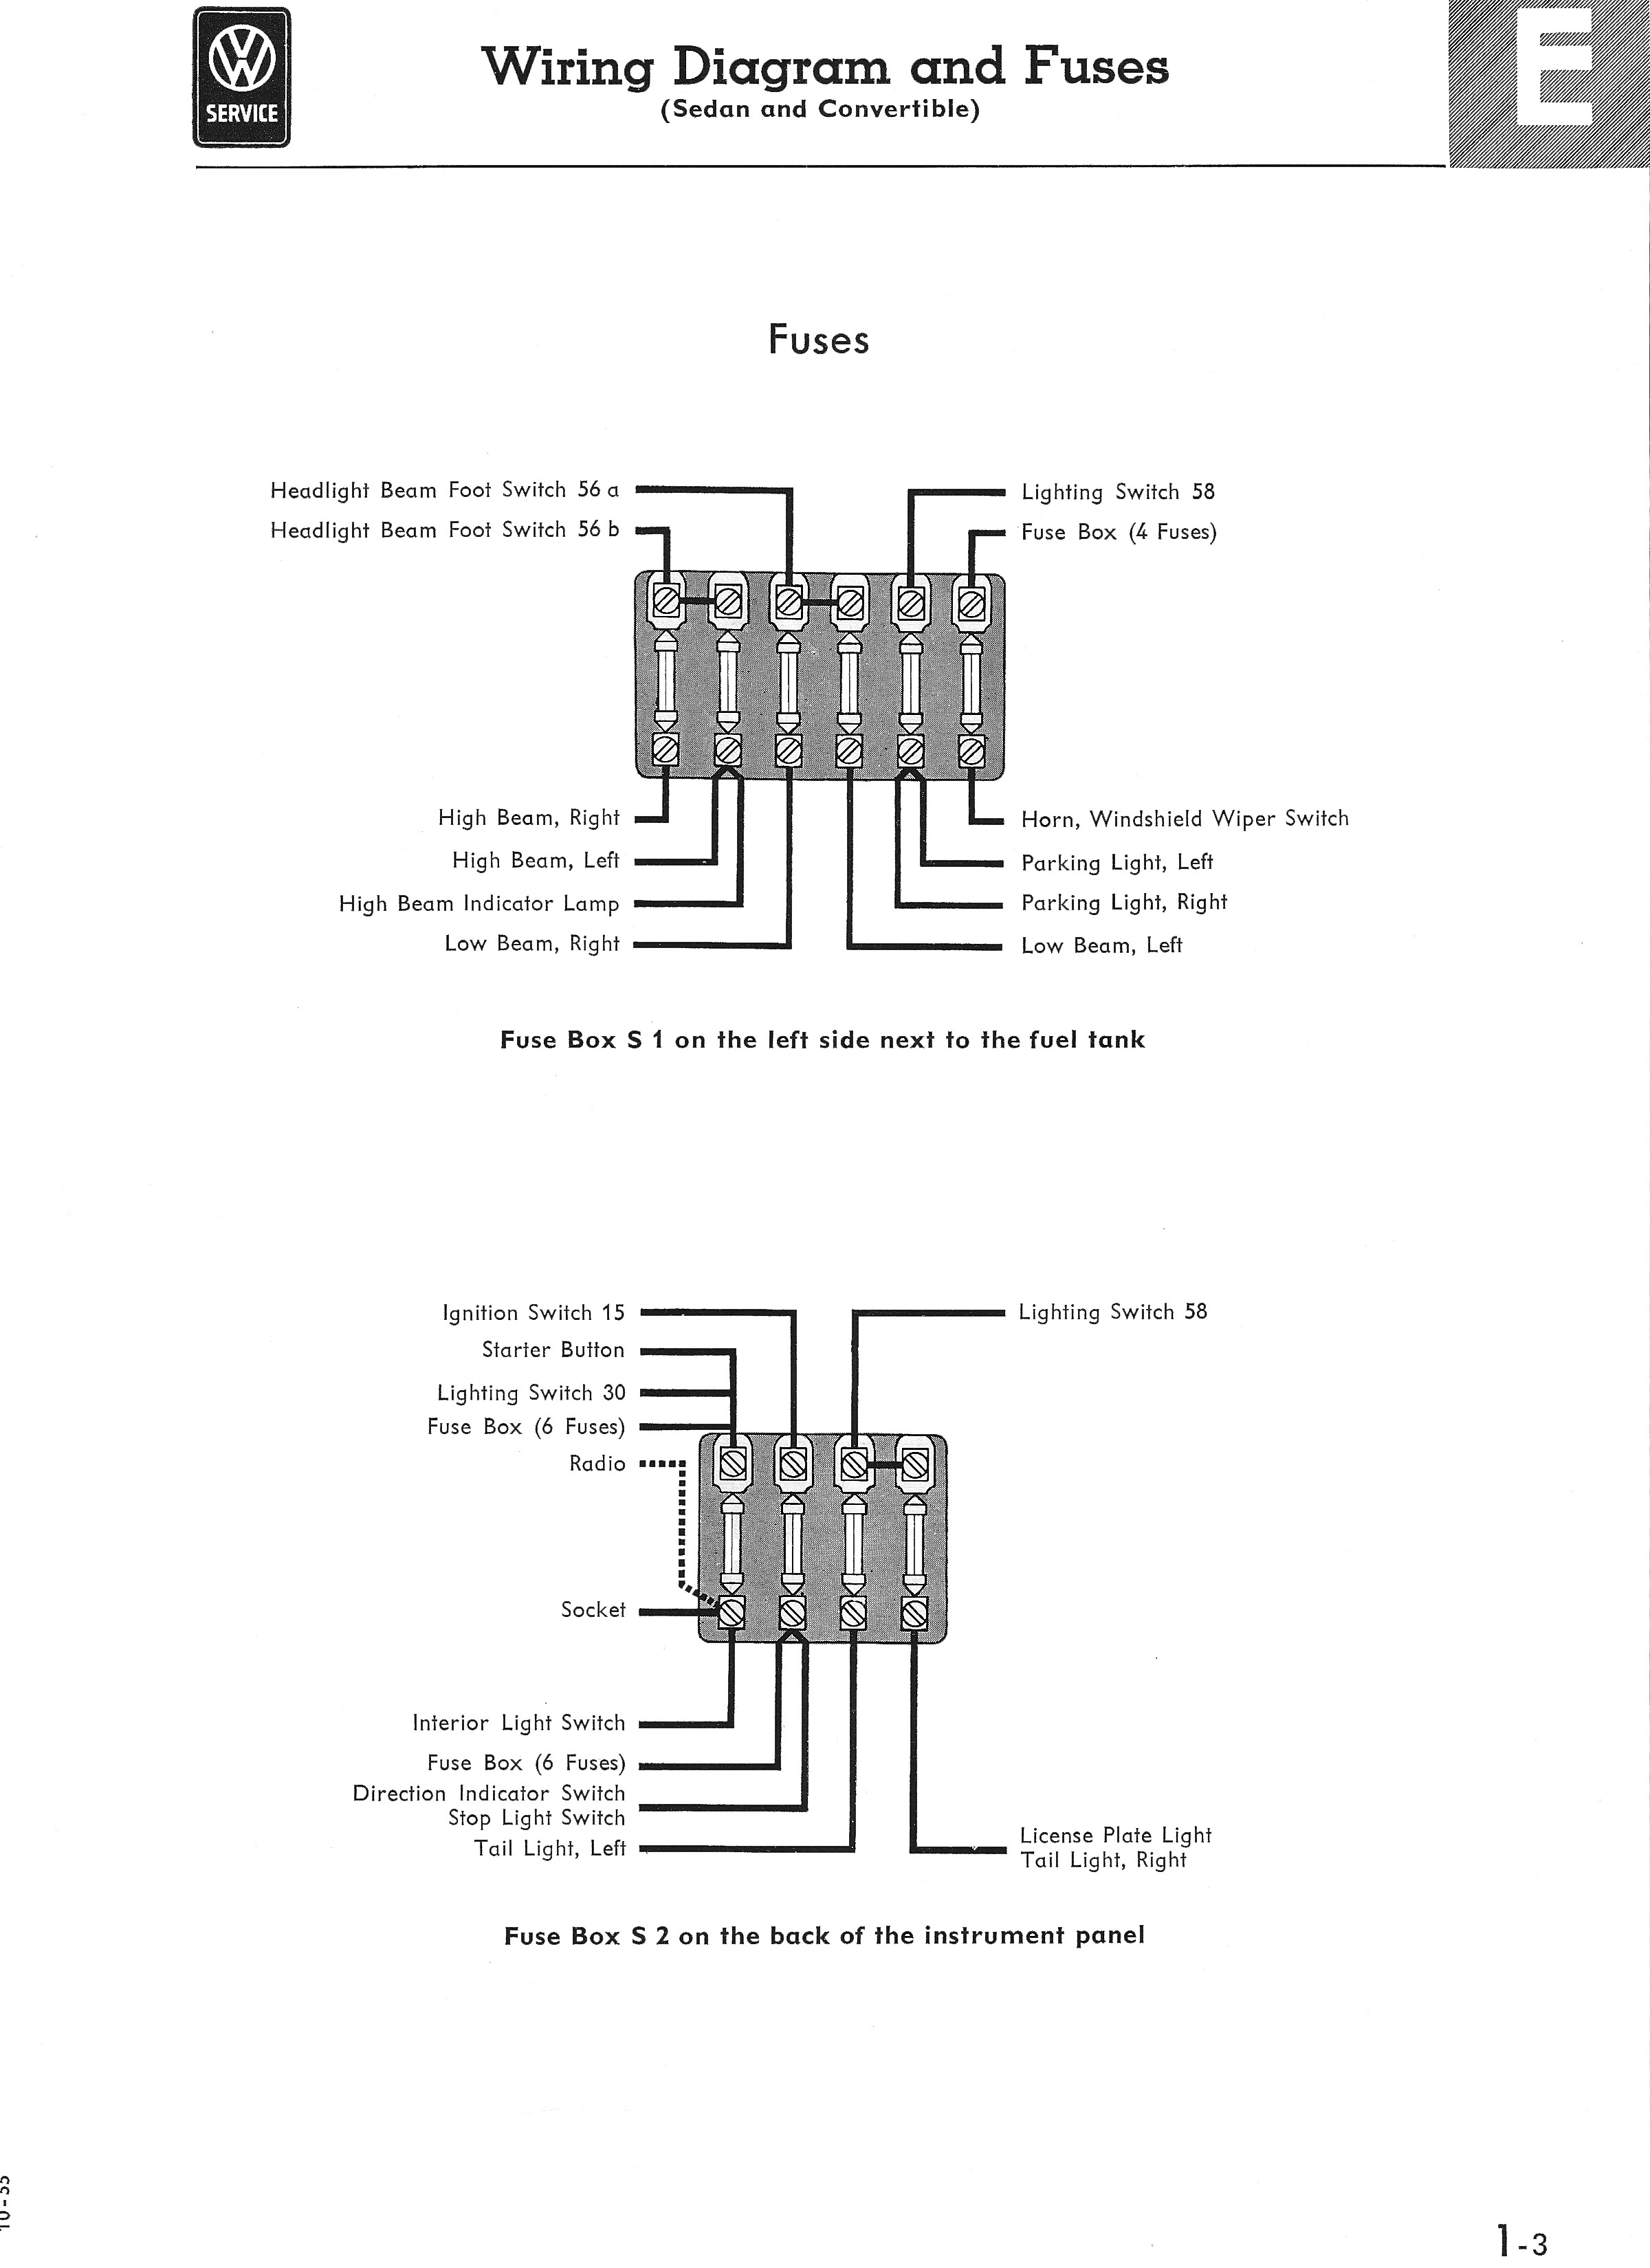 Type 1 Wiring Diagrams Switch Box Diagram